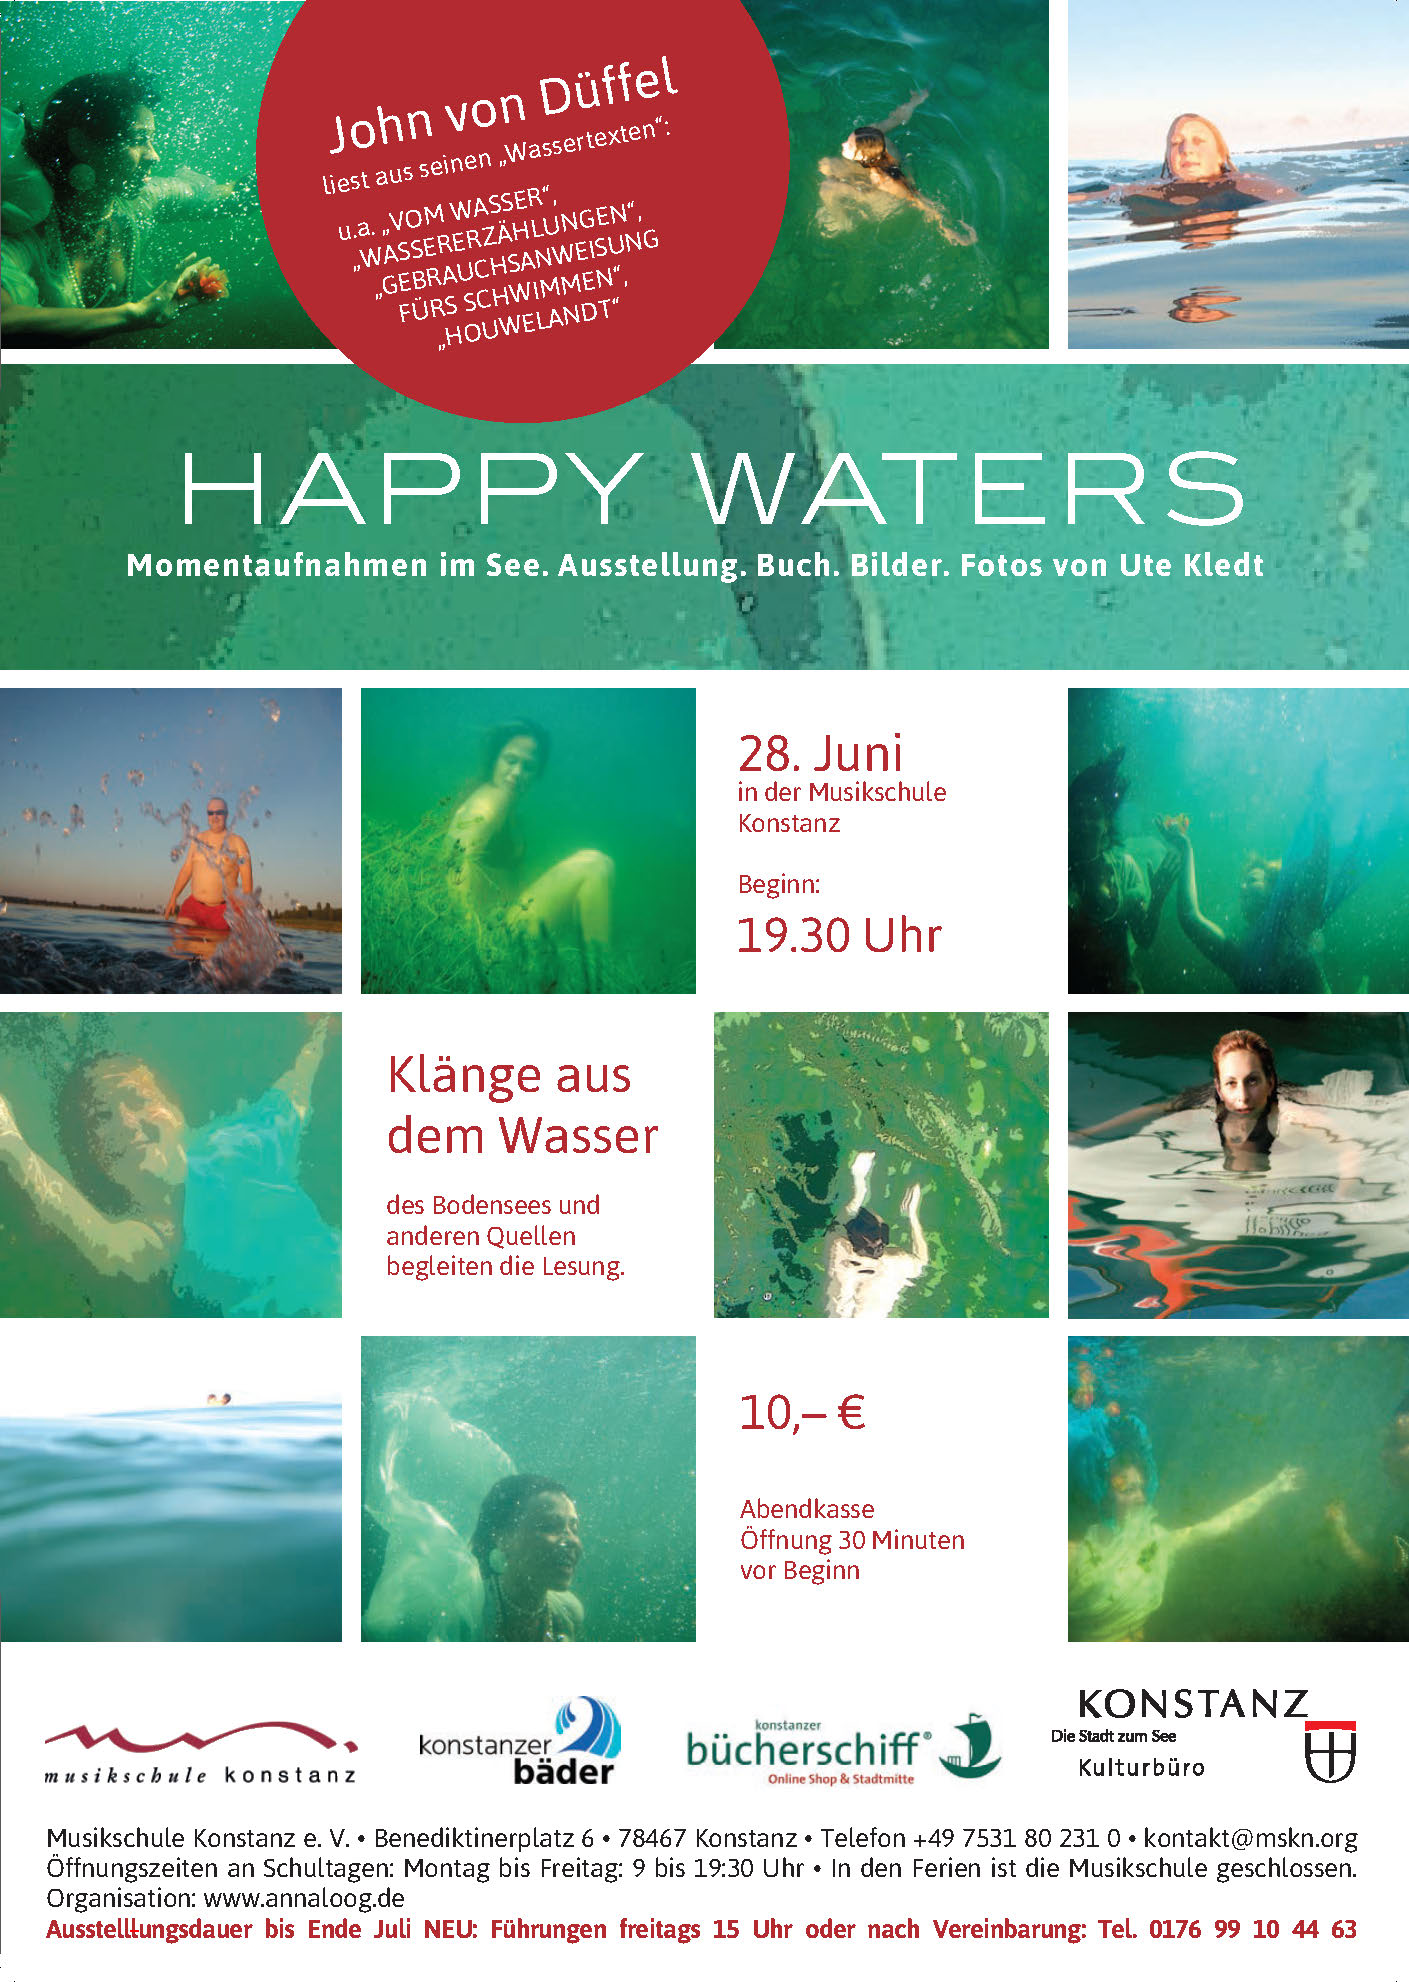 Happy waters Lesung John von Düffel